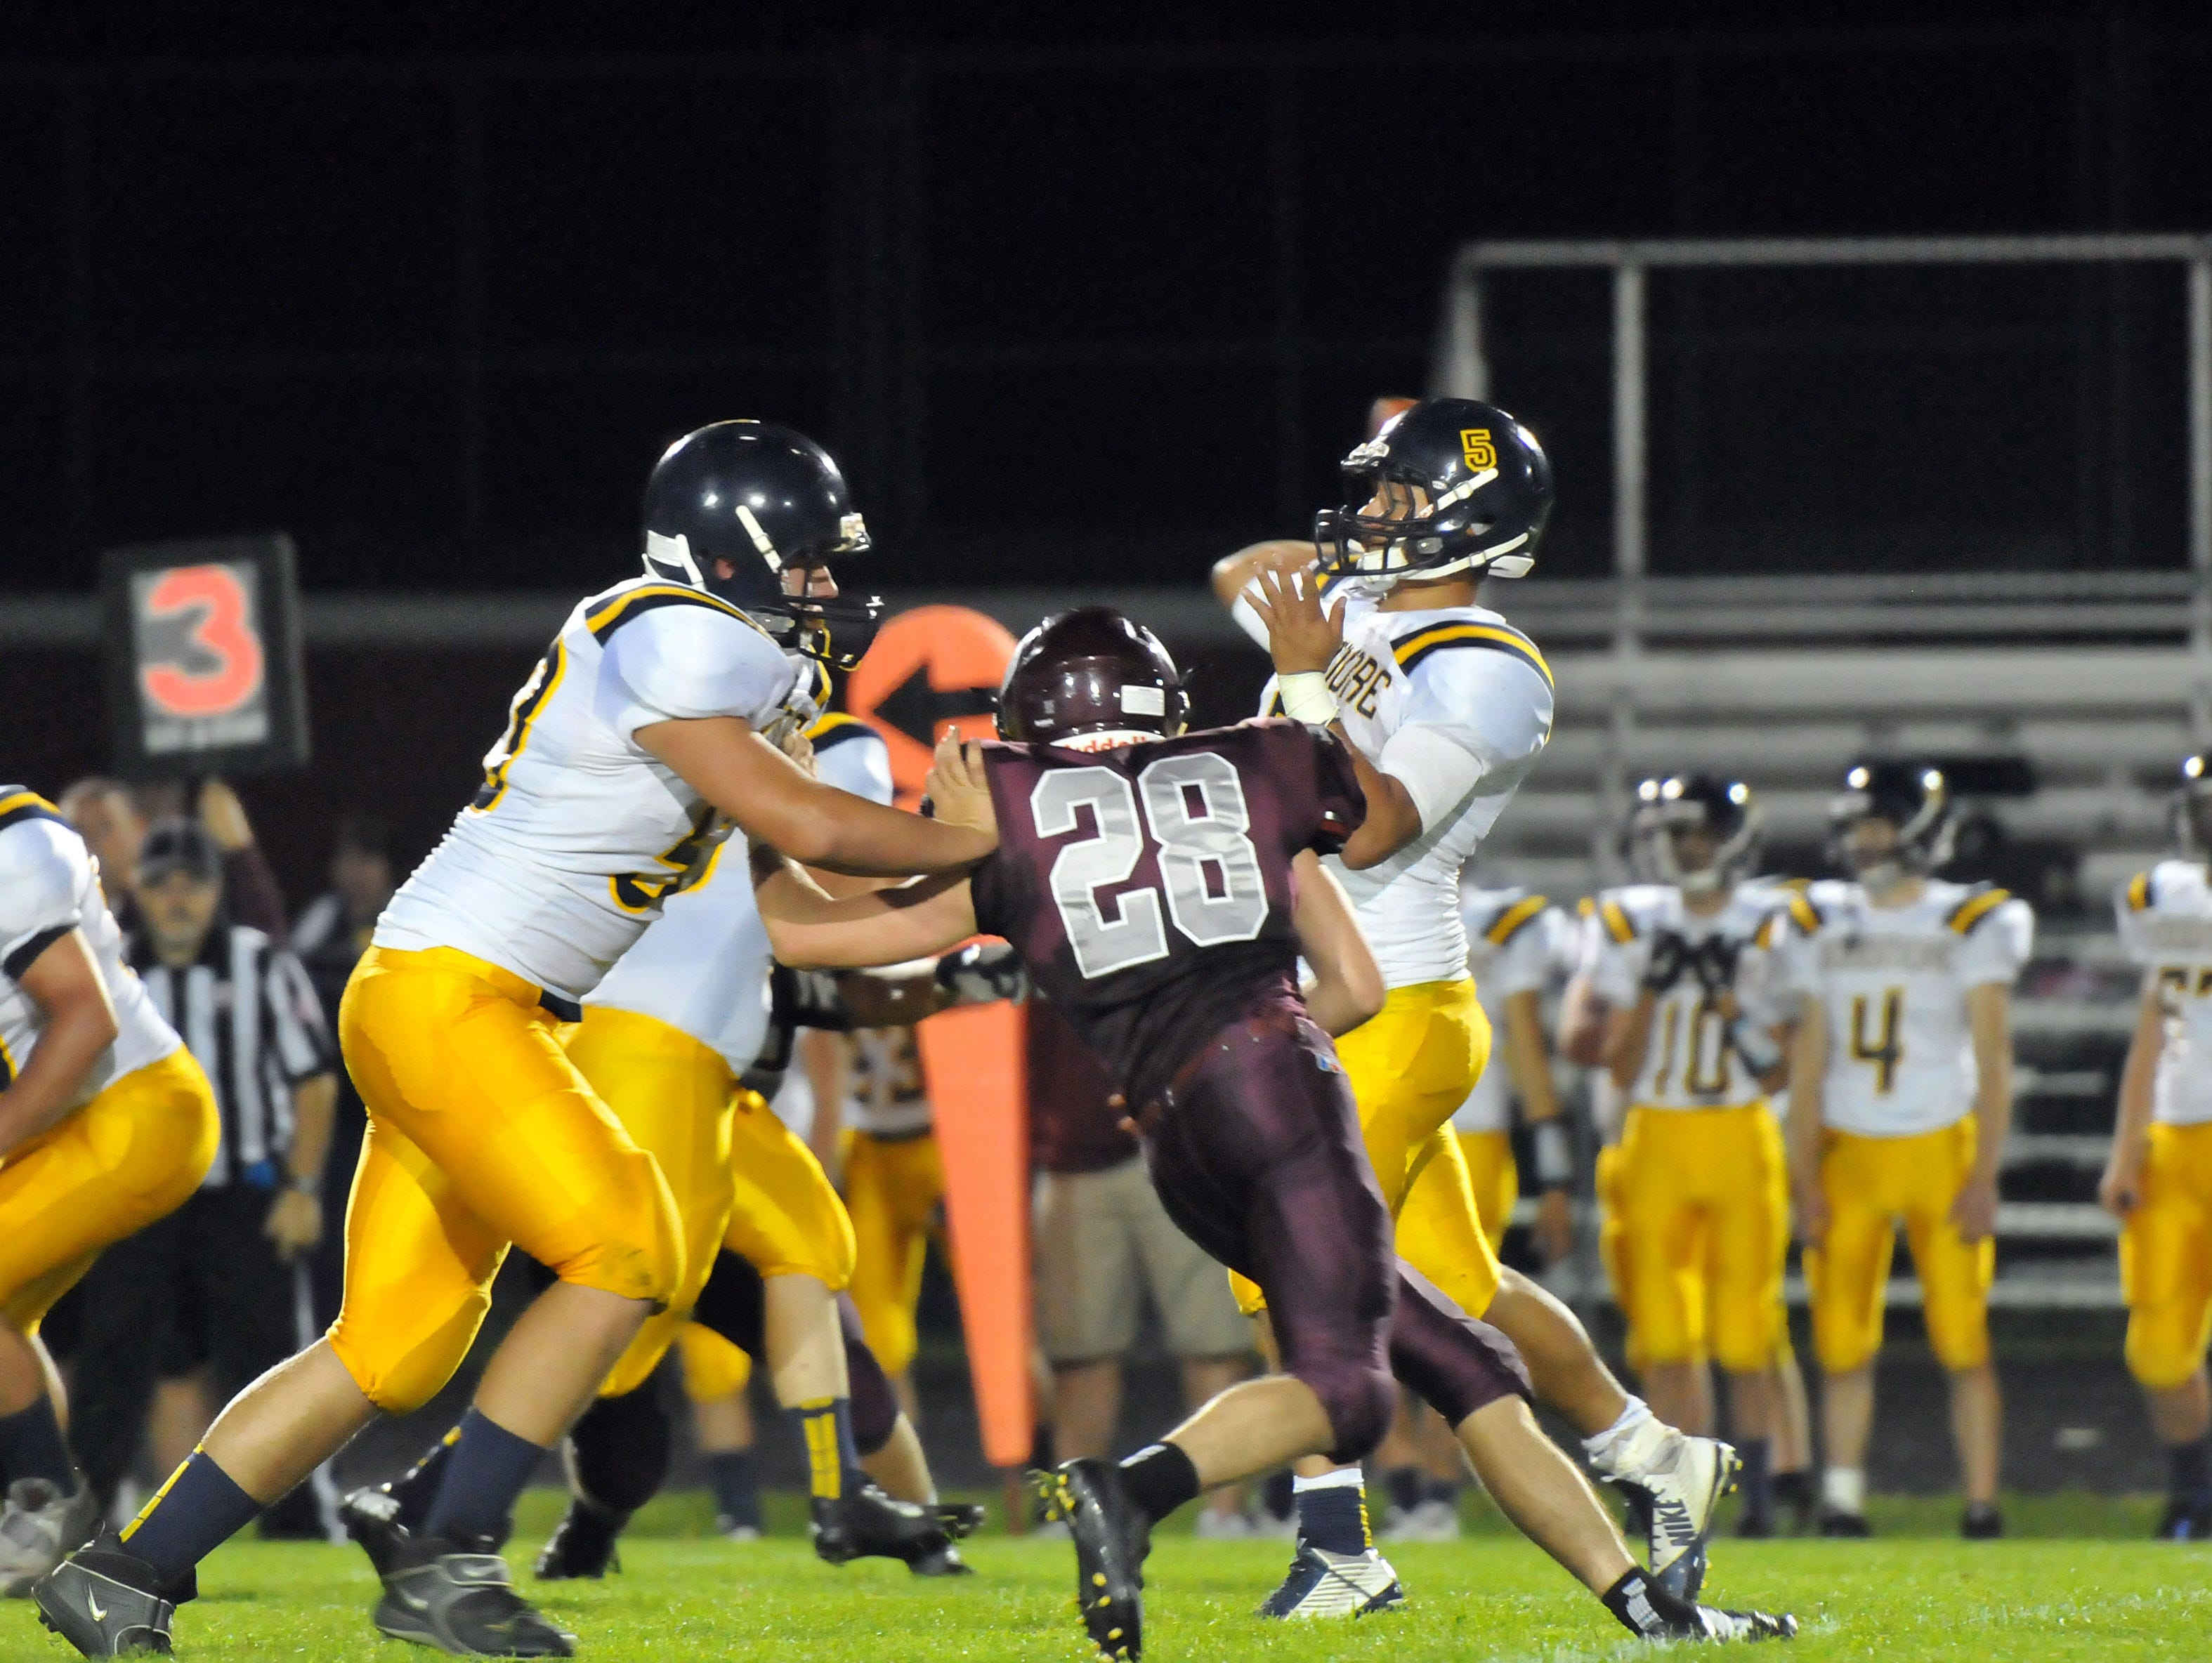 Woodmore's Connor Bringman throws the ball during the Wildcats game at Genoa on Friday night.